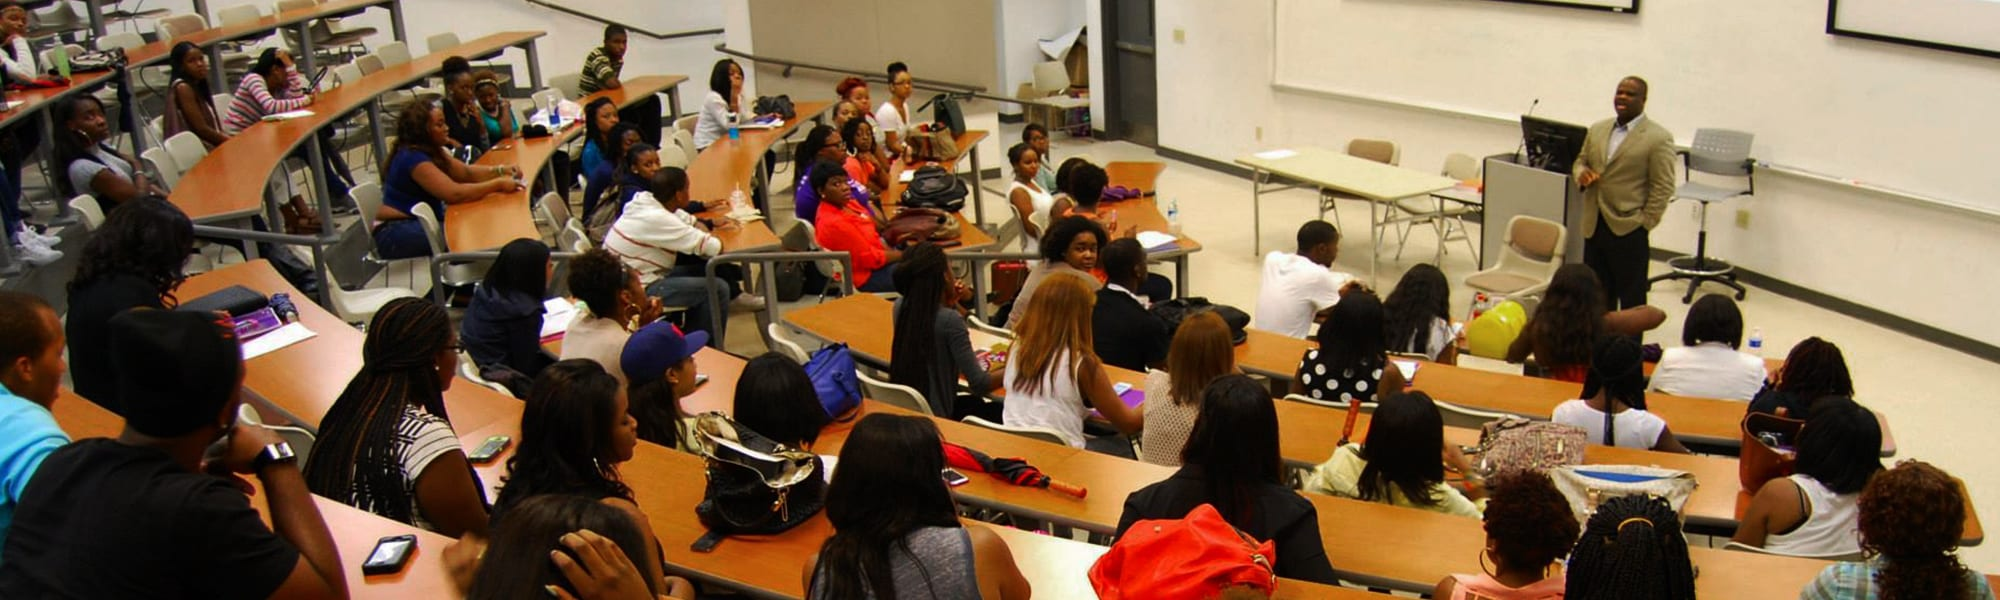 Group shot of students sitting in class listening to a professor give a lecture